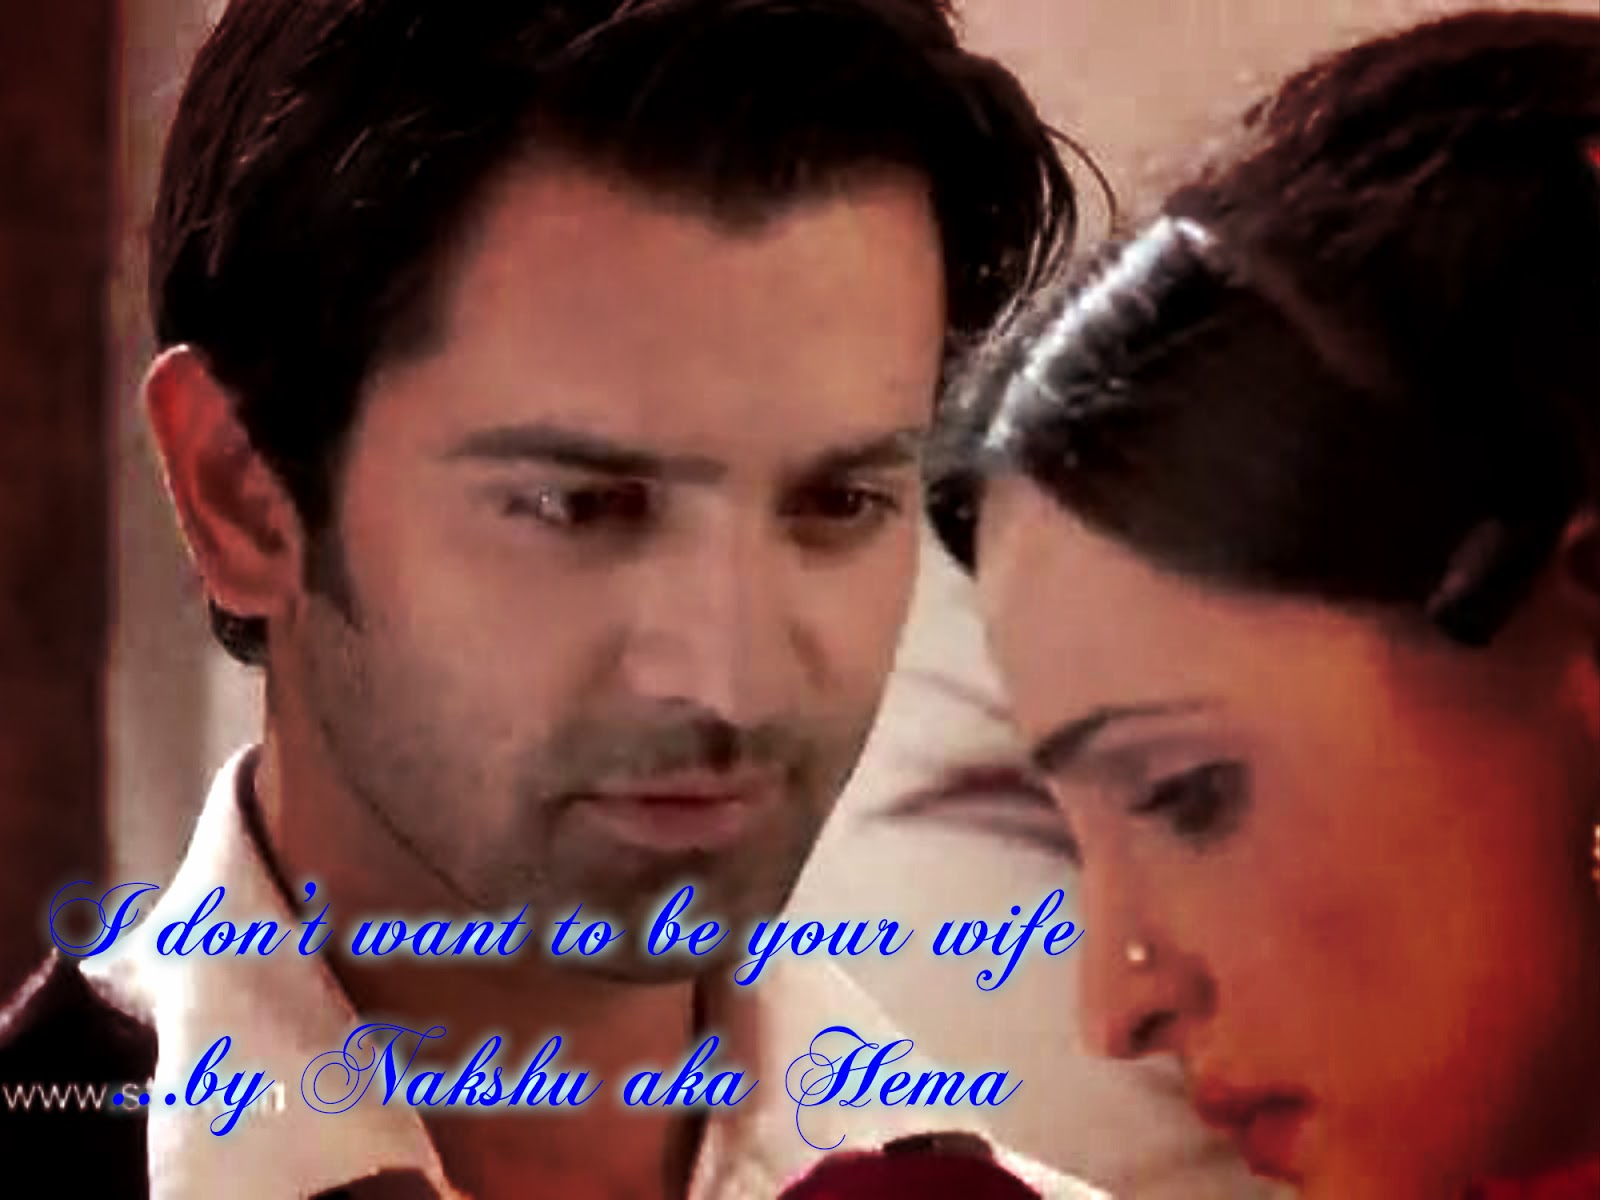 Arshi - The Magic of love: OS - I don't want to be your Wife